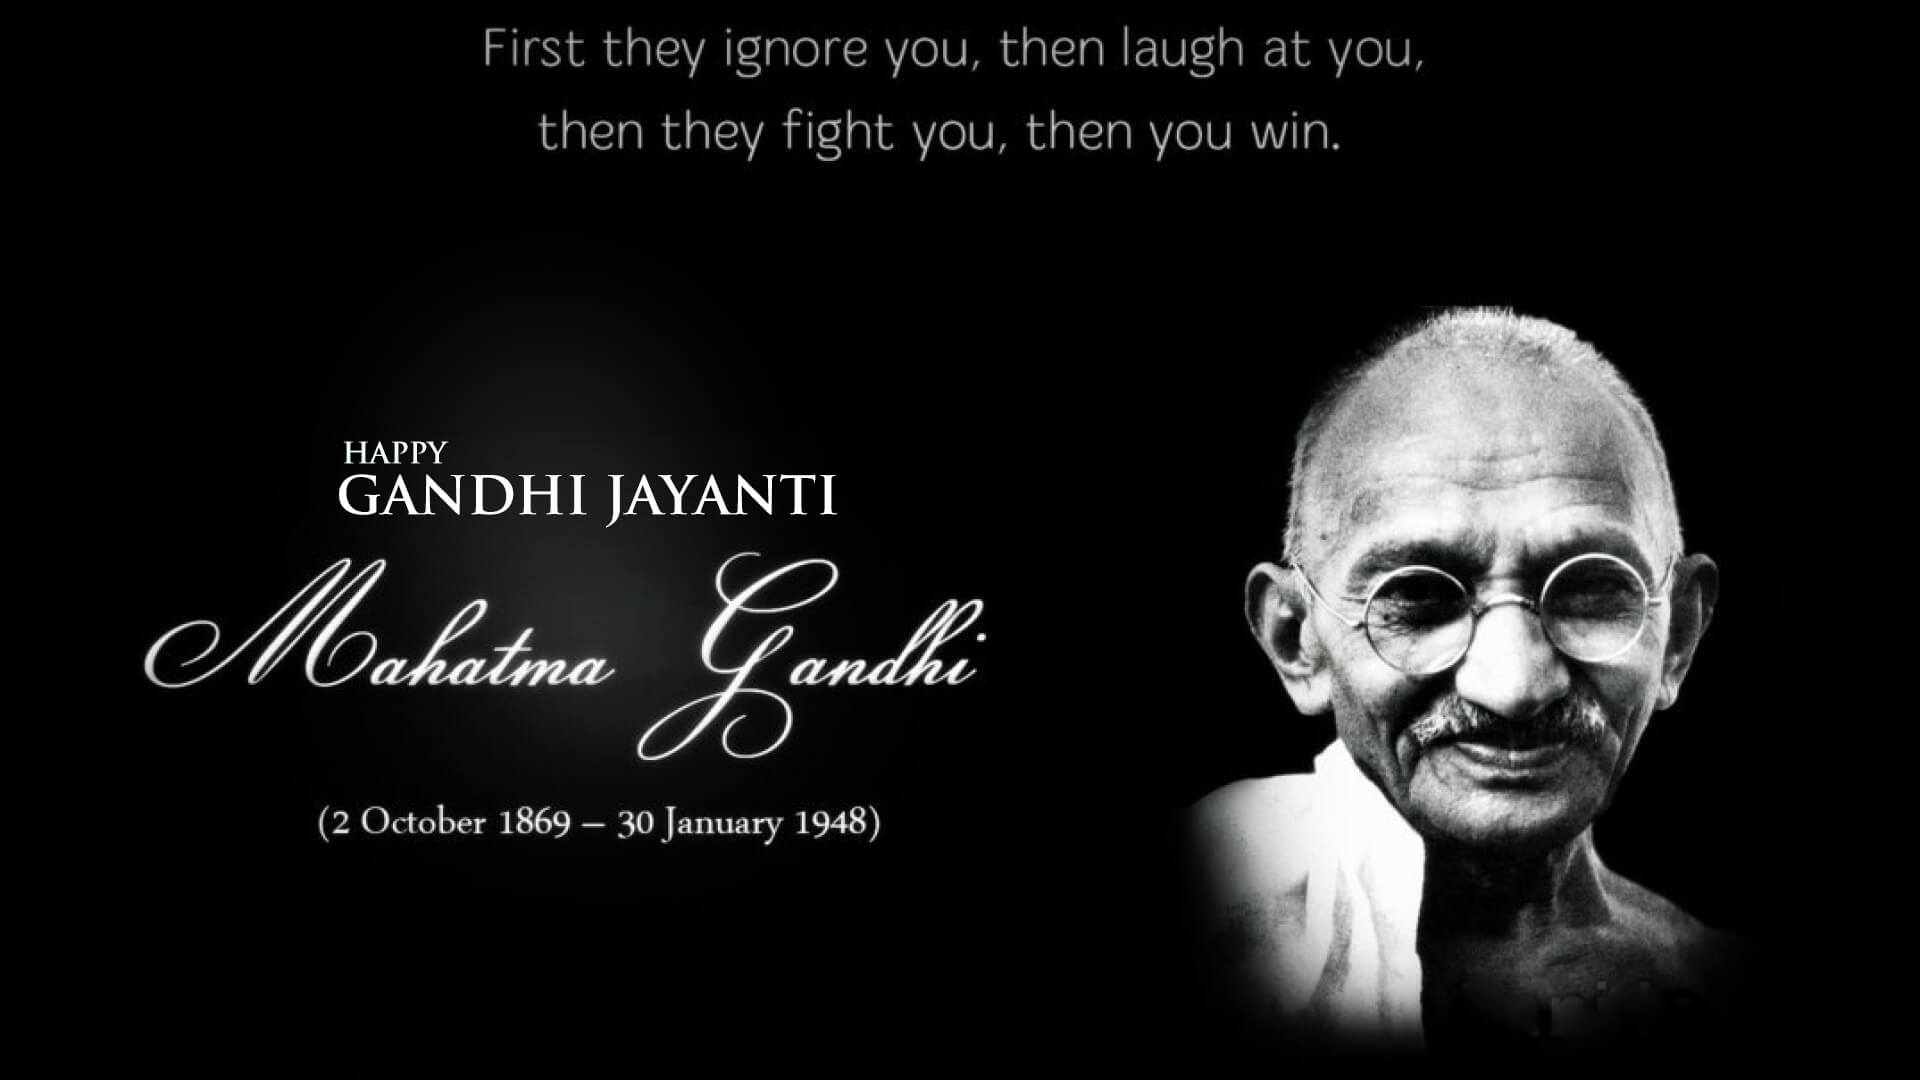 gandhi jayanti october 2 success quotes hd wallpaper